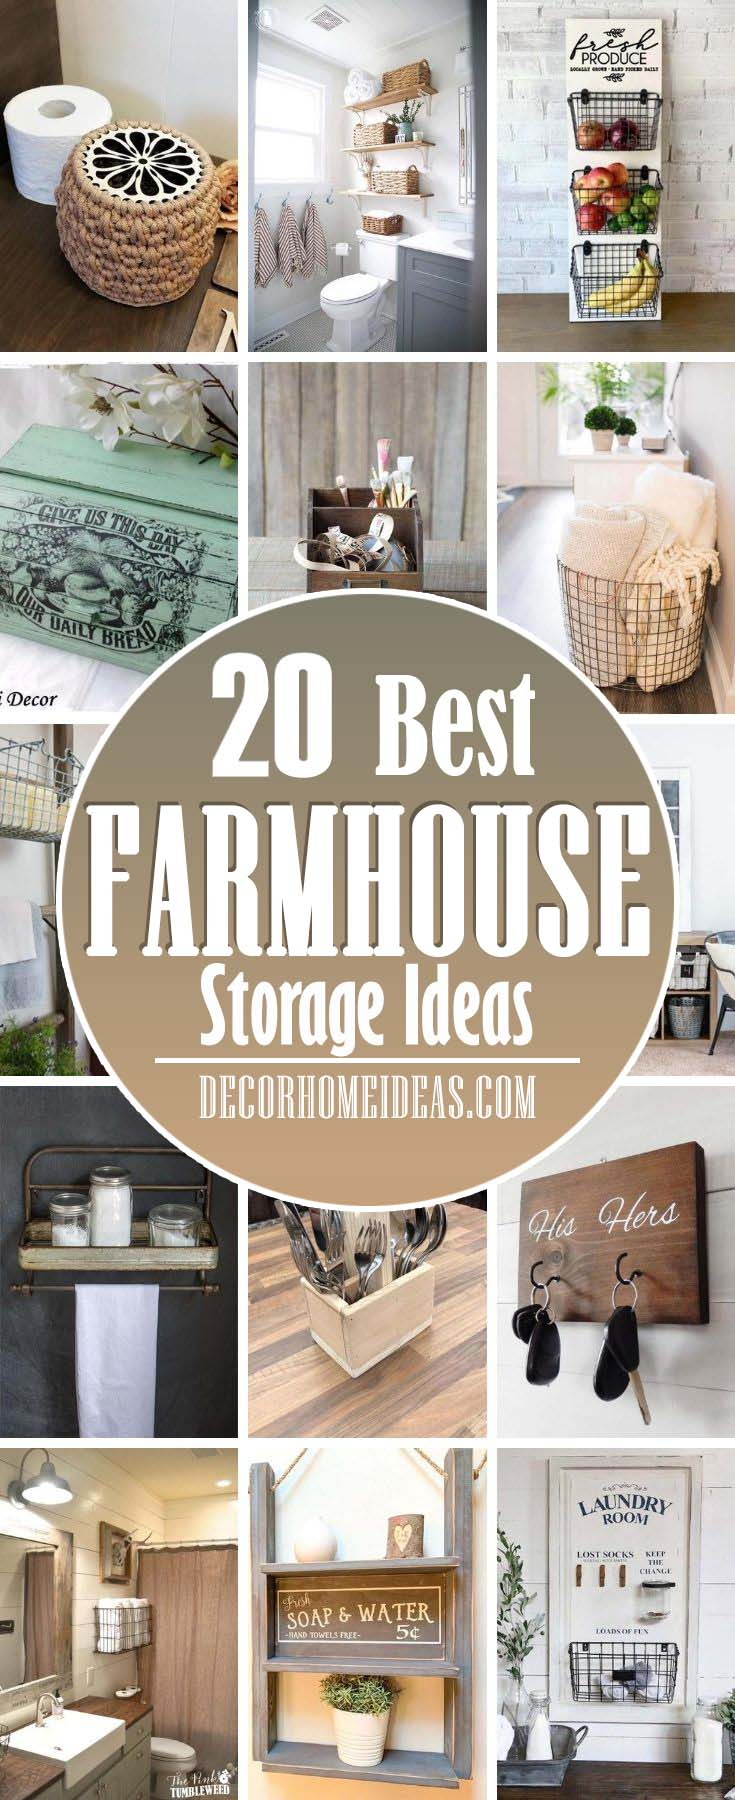 Best Farmhouse Storage Ideas. Give your storage solutions a rustic and antique makeover with these wonderful farmhouse storage ideas that are simple yet so chic. #decorhomeideas